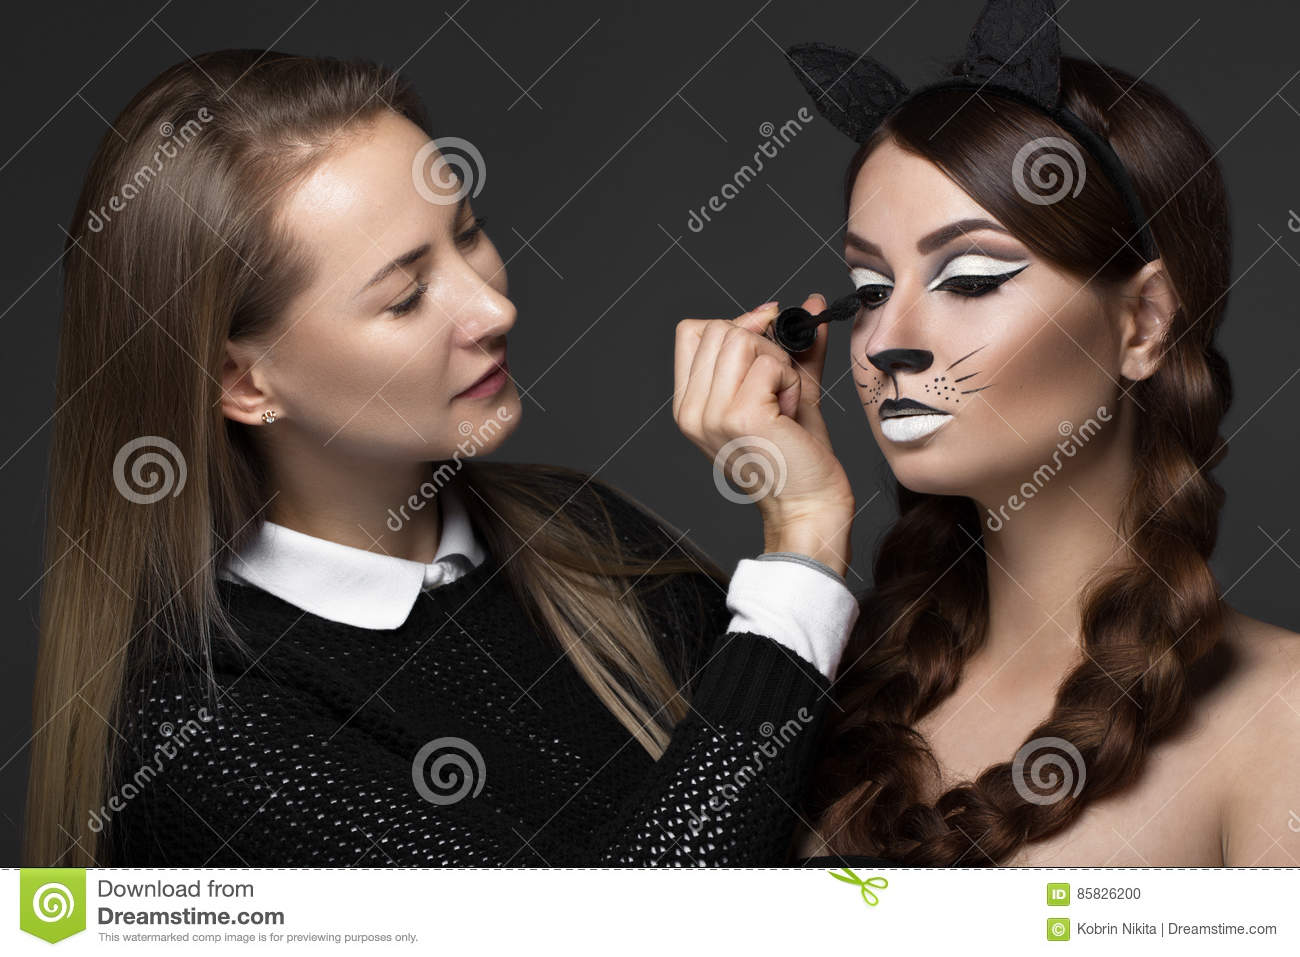 Two Beautiful Girls On Photo Shoot To Apply Face Makeup